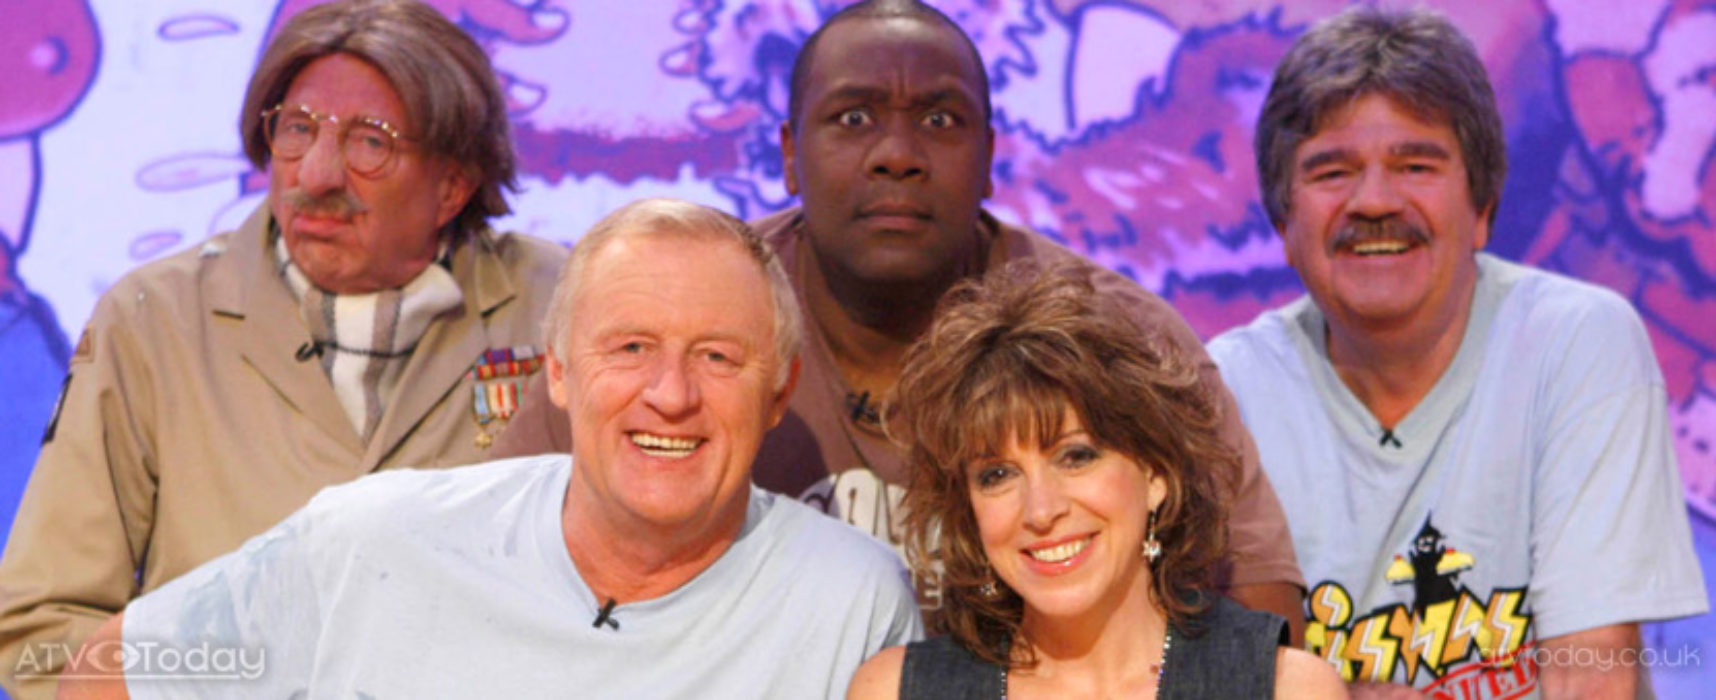 Blue Peter, Tiswas and Playschool named some of the top children's programmes of all time